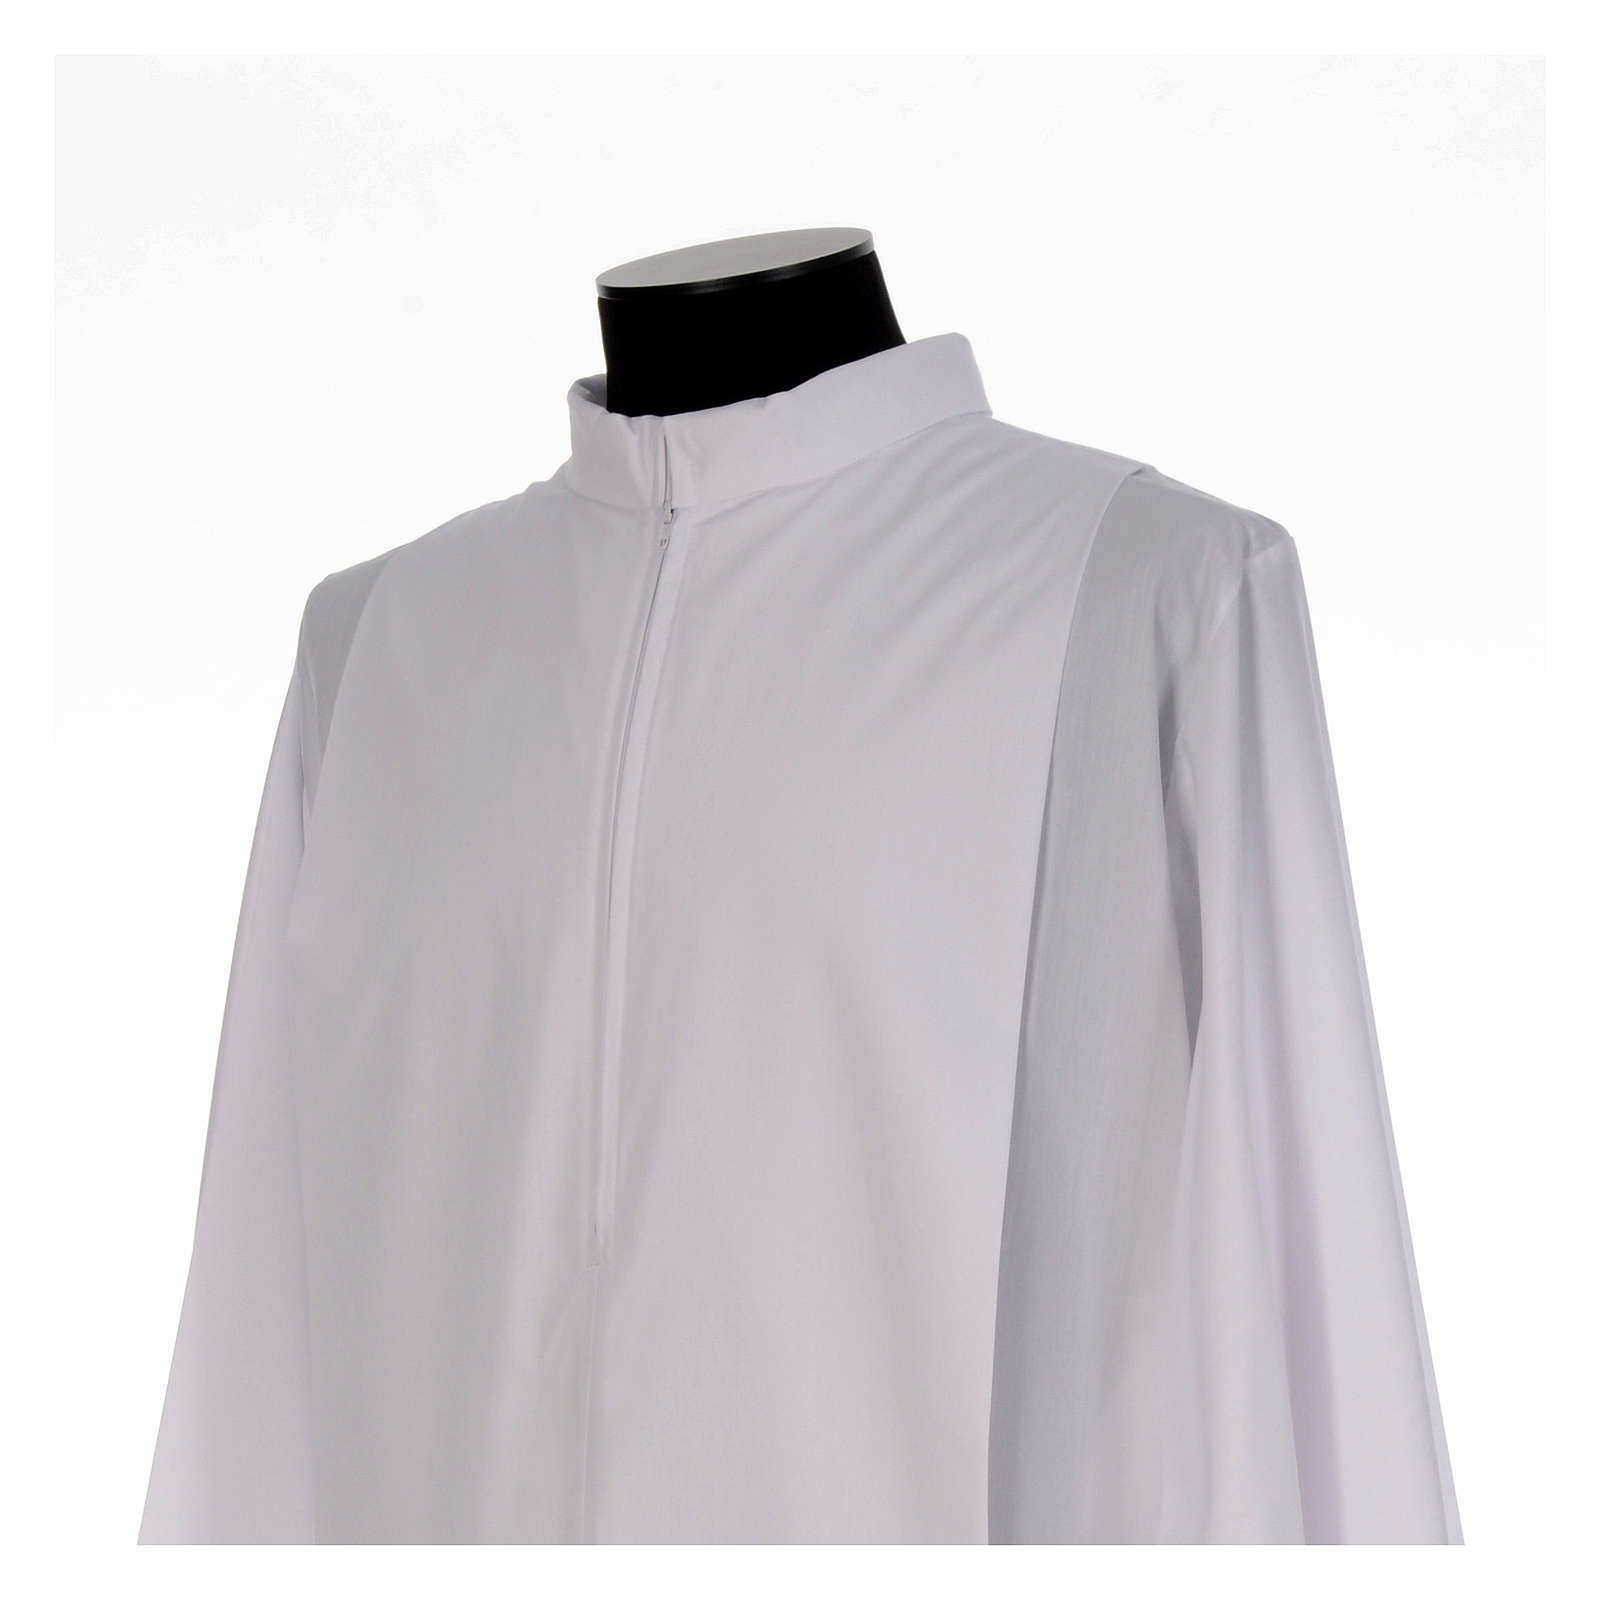 White alb, pleated with collar in cotton mix 4